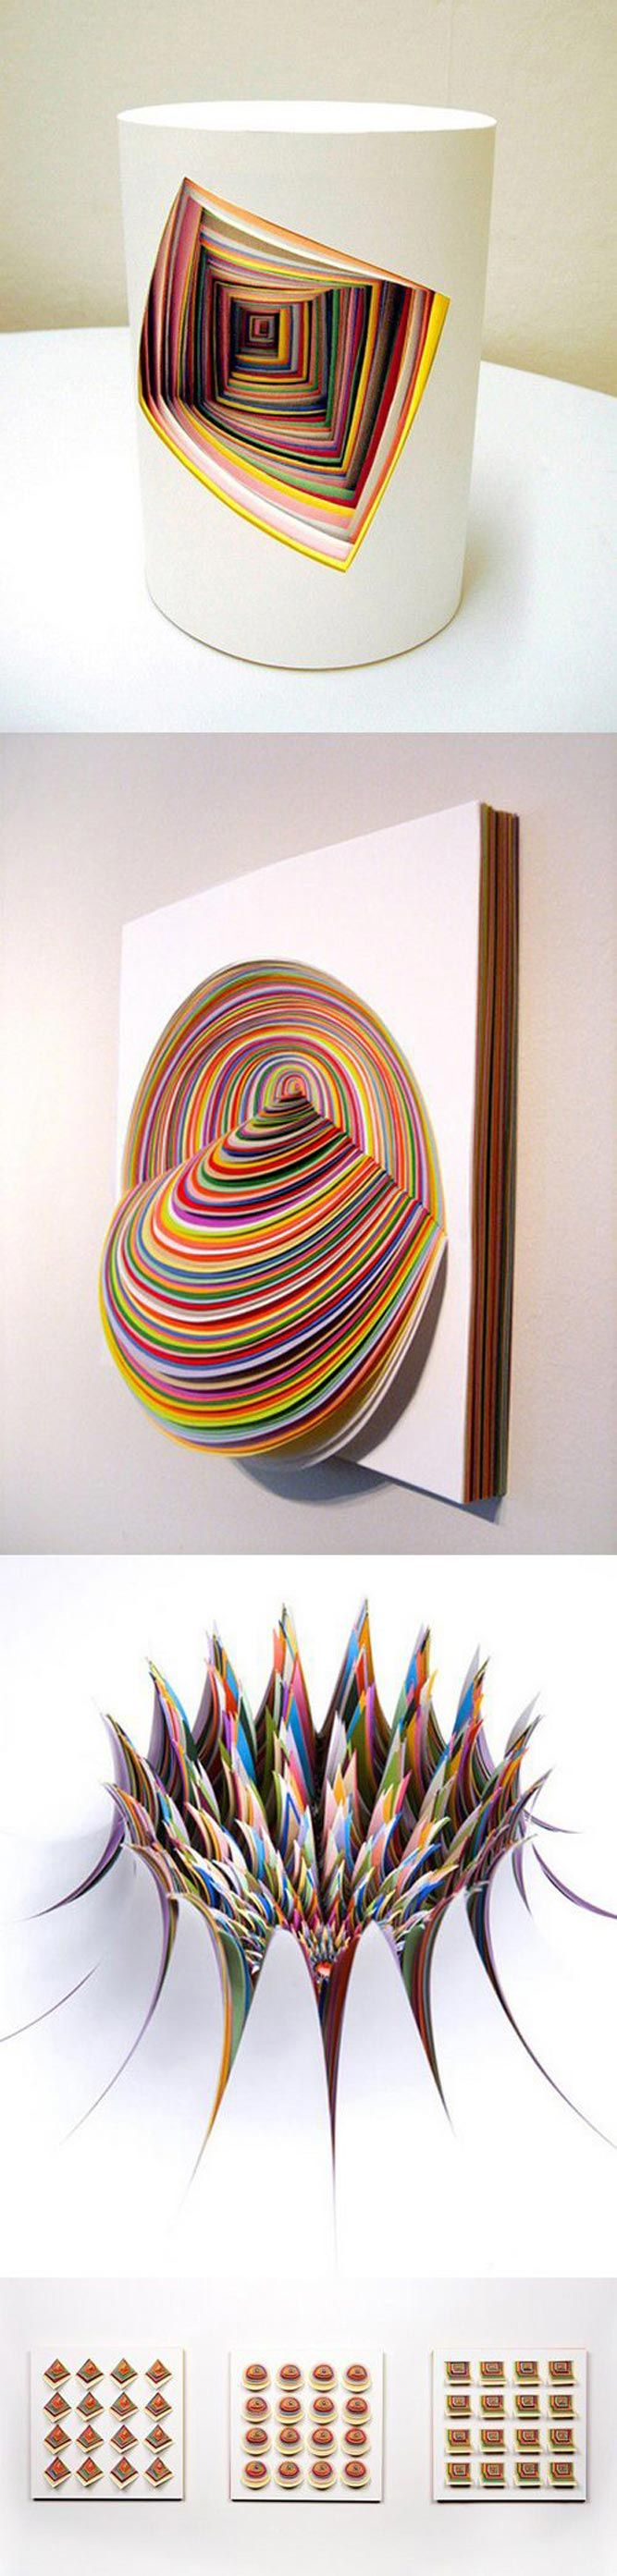 This is a paper art sculpture made with coloured paper rings via http://www.paperartlove.com/paper-art-inspiration-1/